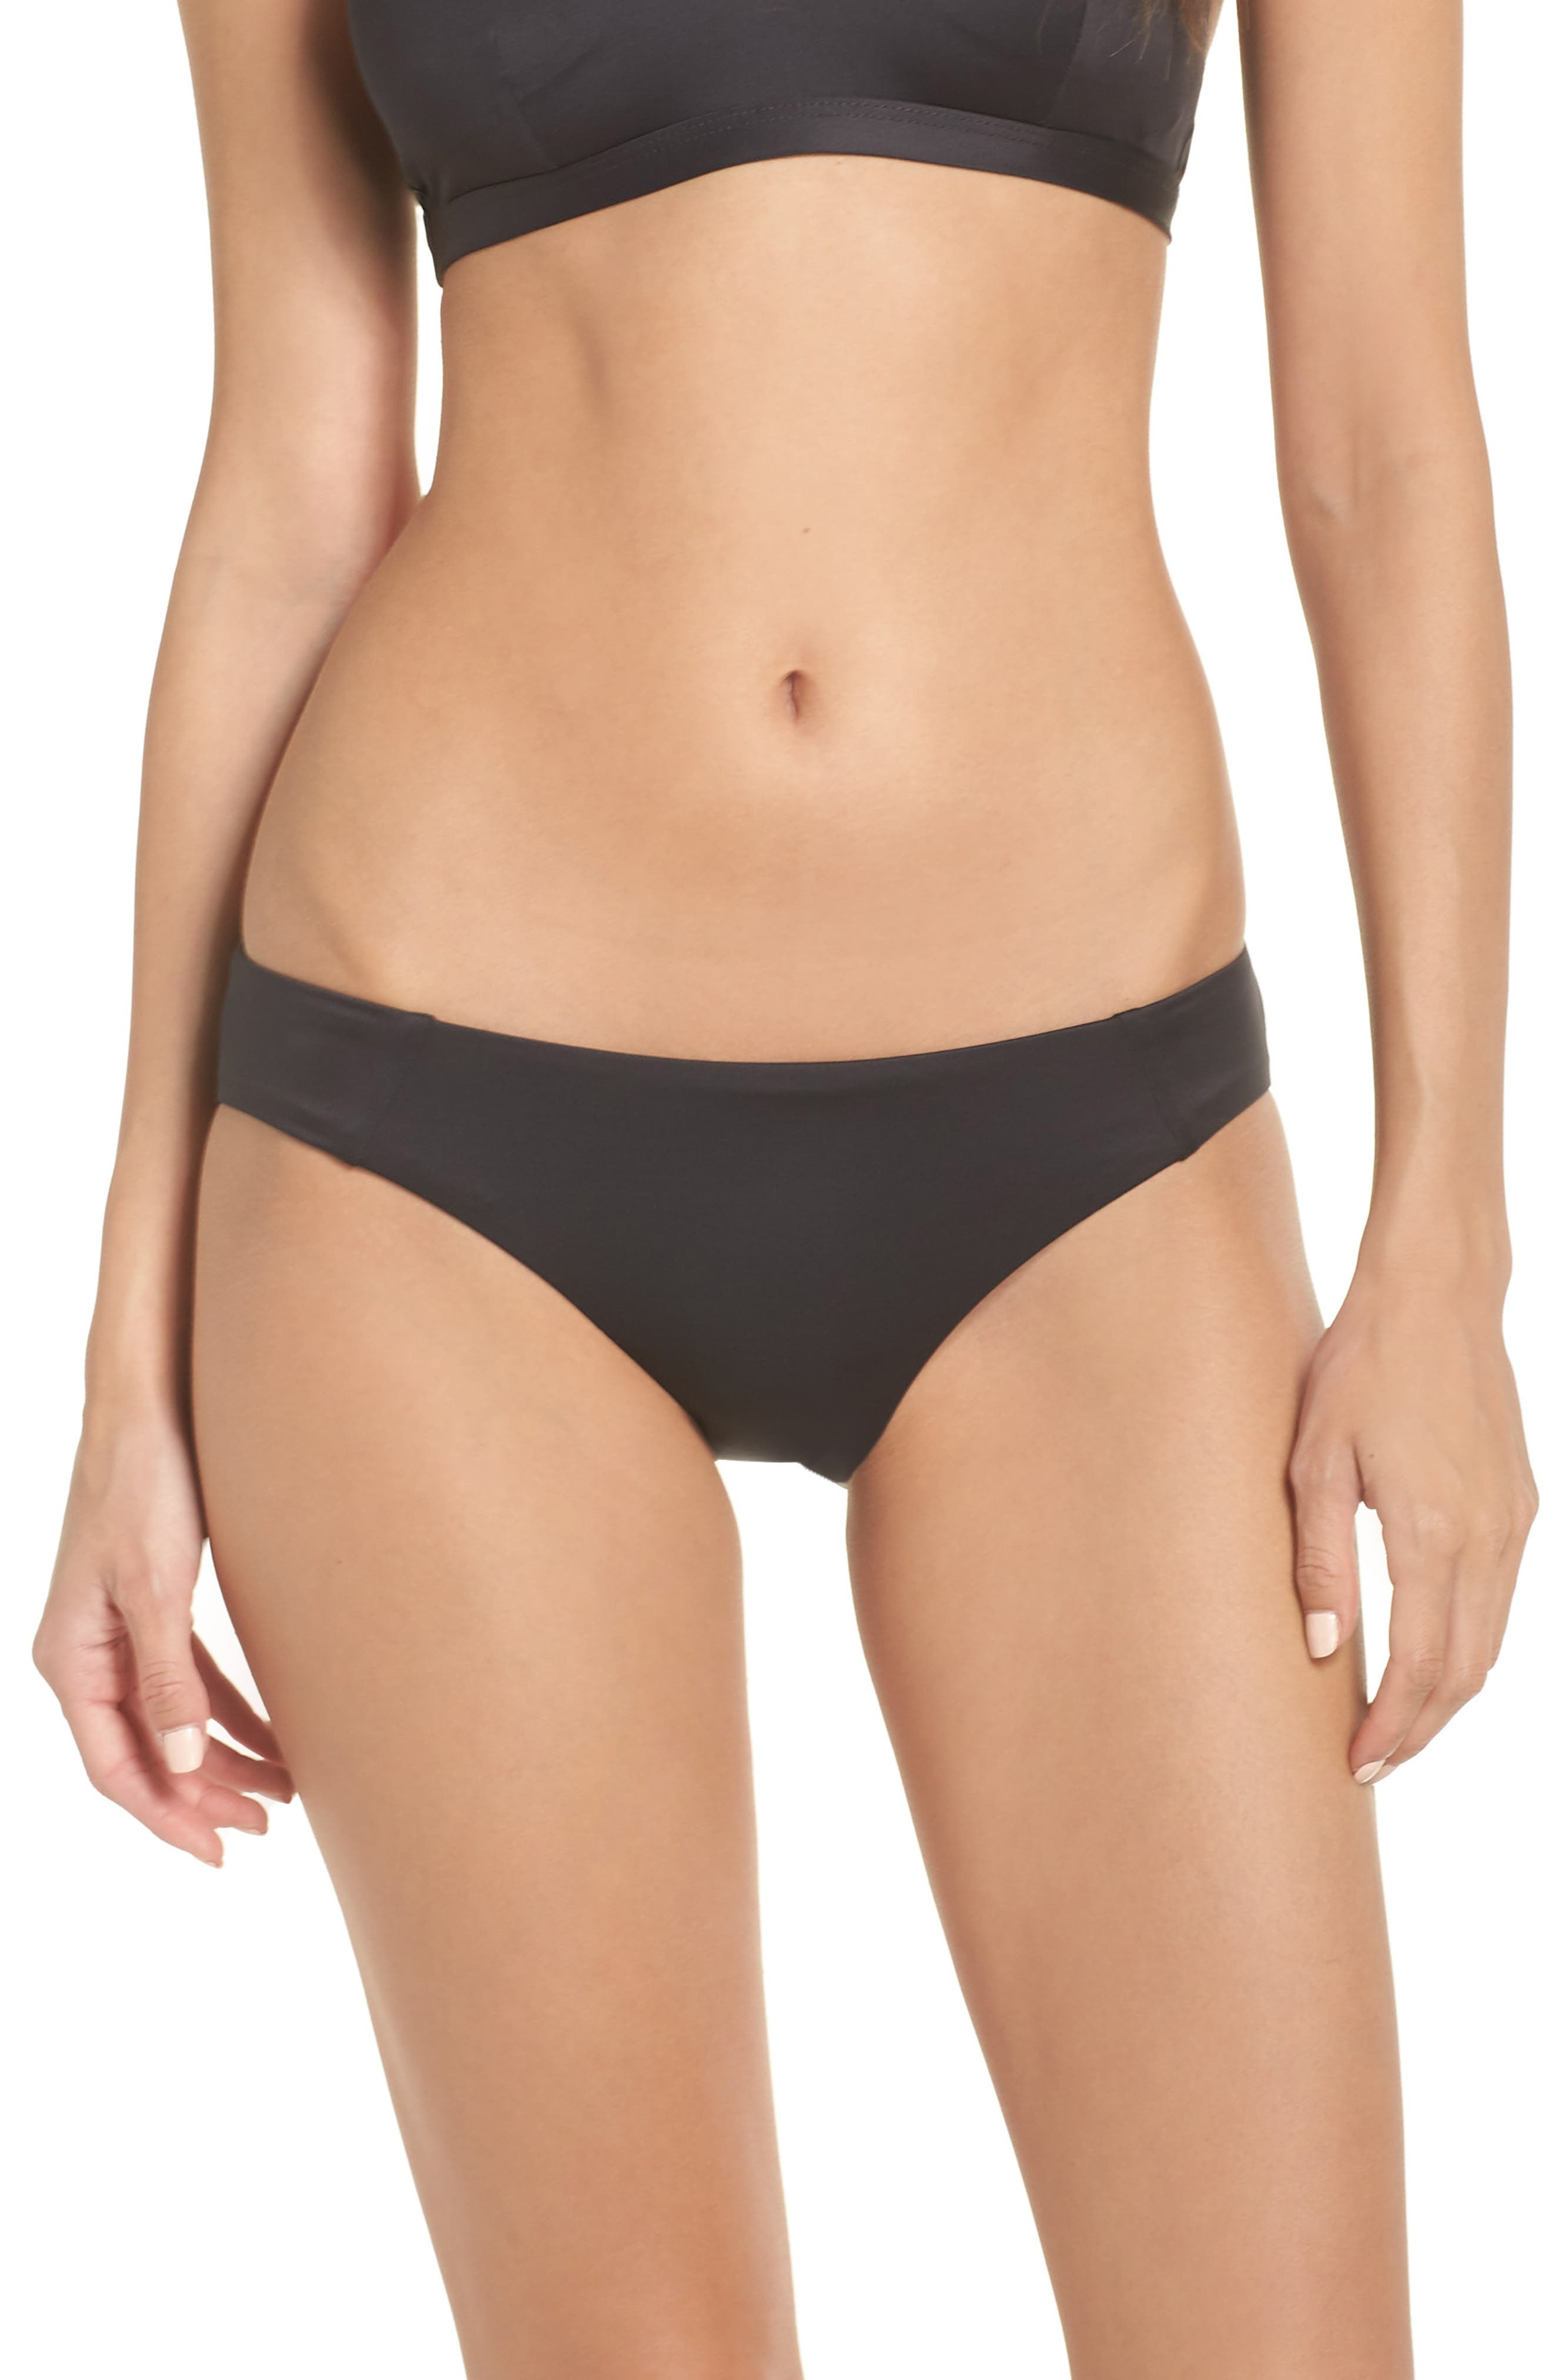 Patagonia - Women's Swimwear and Beachwear